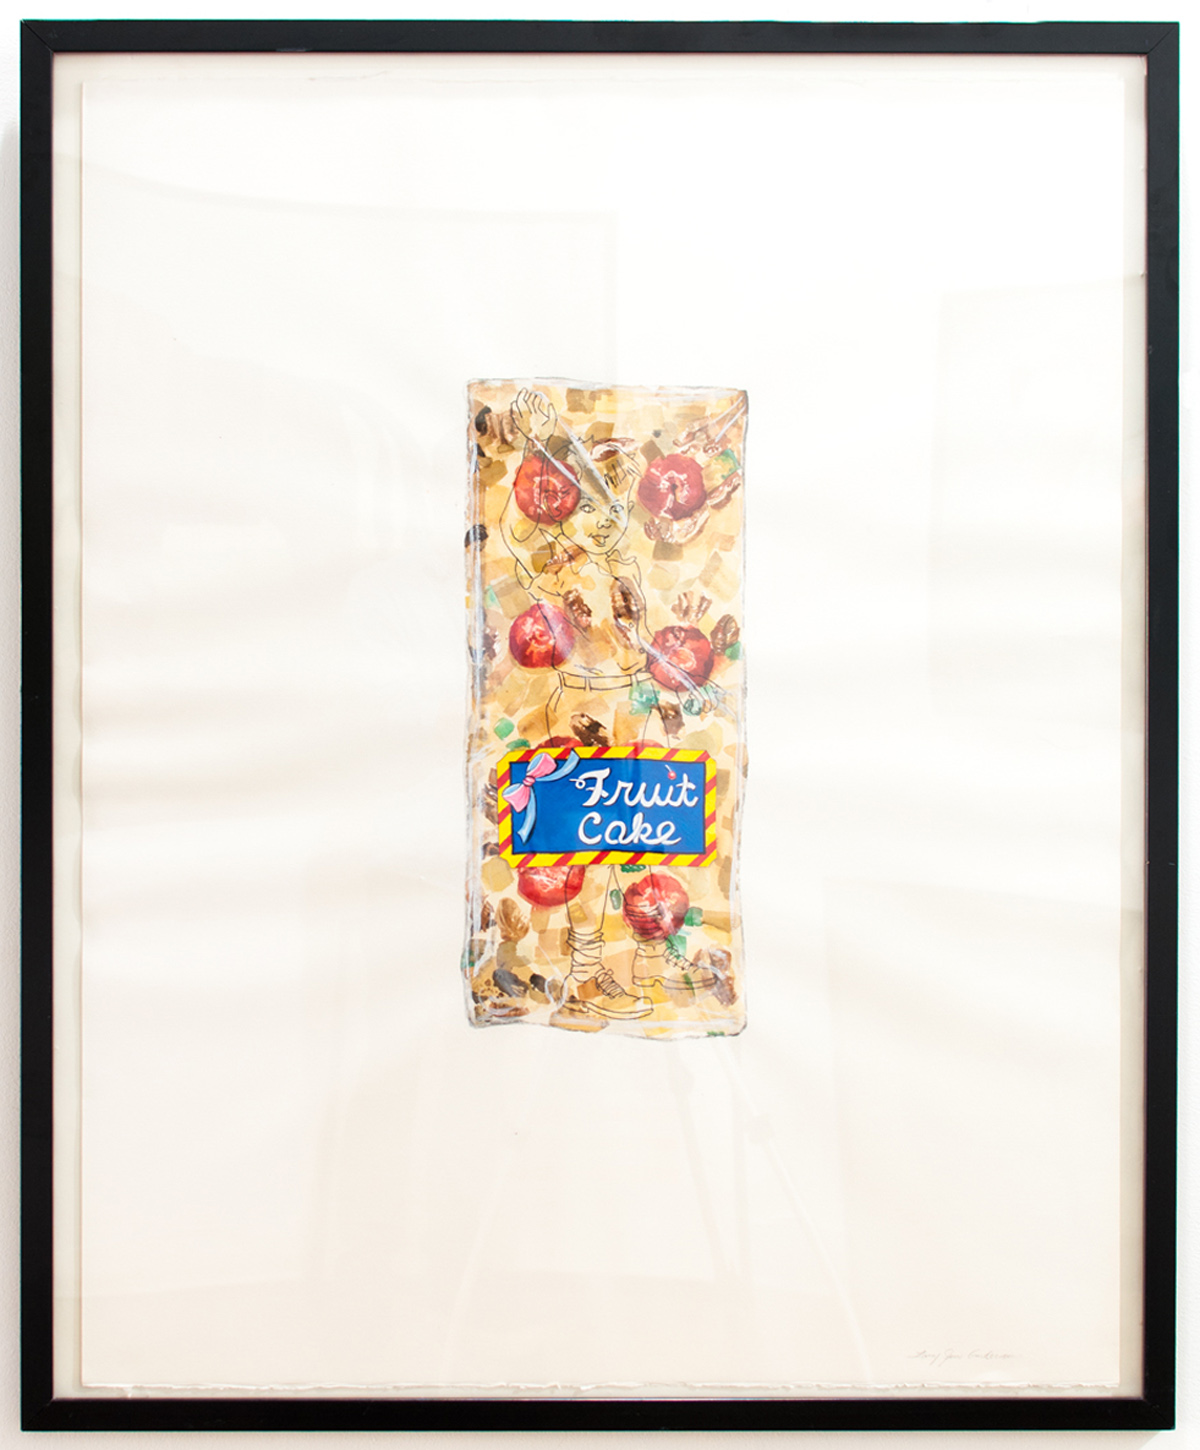 larry-jens-anderson-fruit-cake-watercolor-and-colored-pencil-45.75-x-37.5.jpg